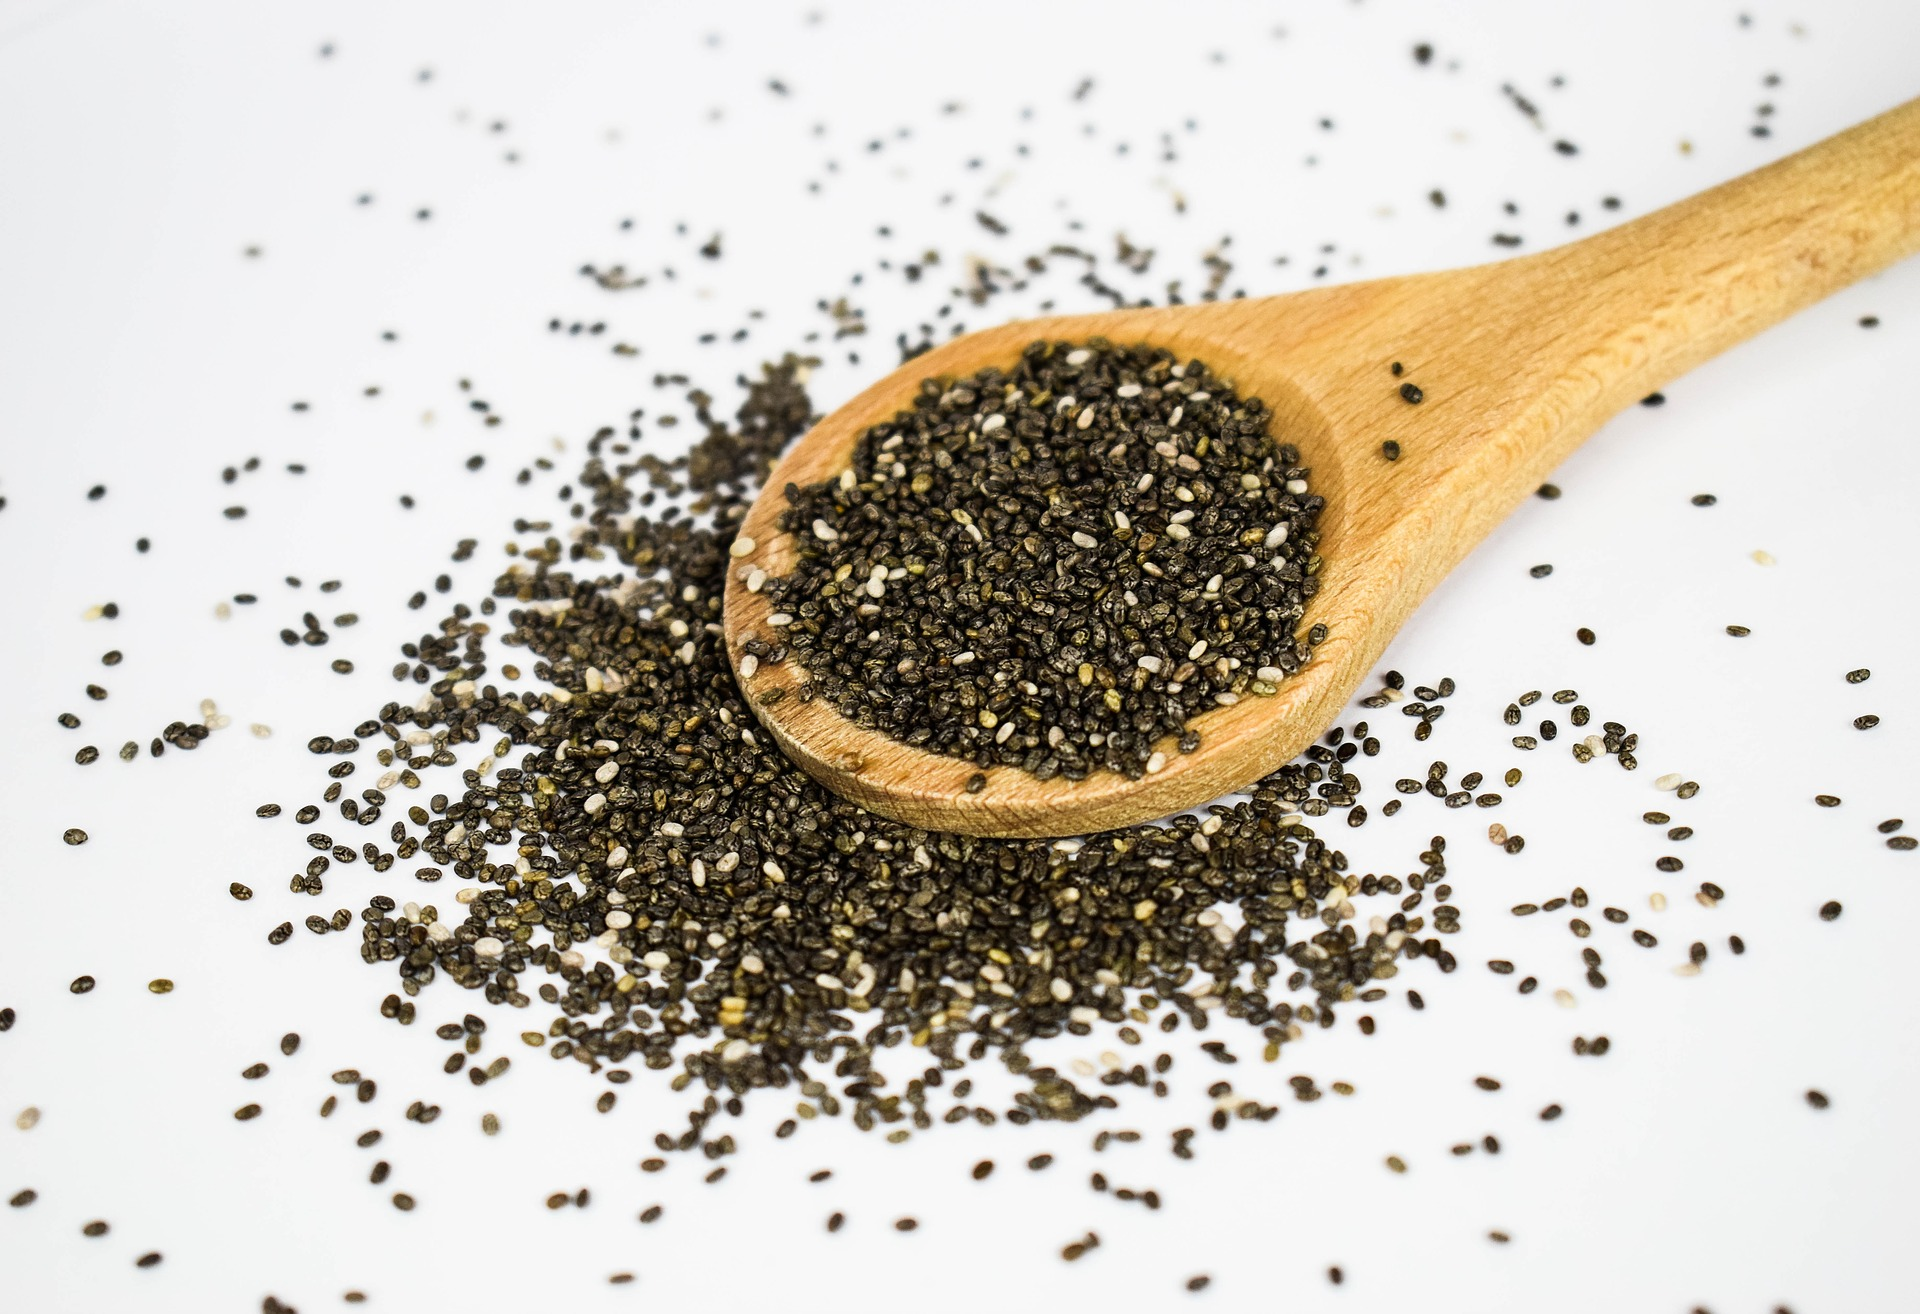 chia seeds, superfoods, nutrition, whole foods, chia pudding